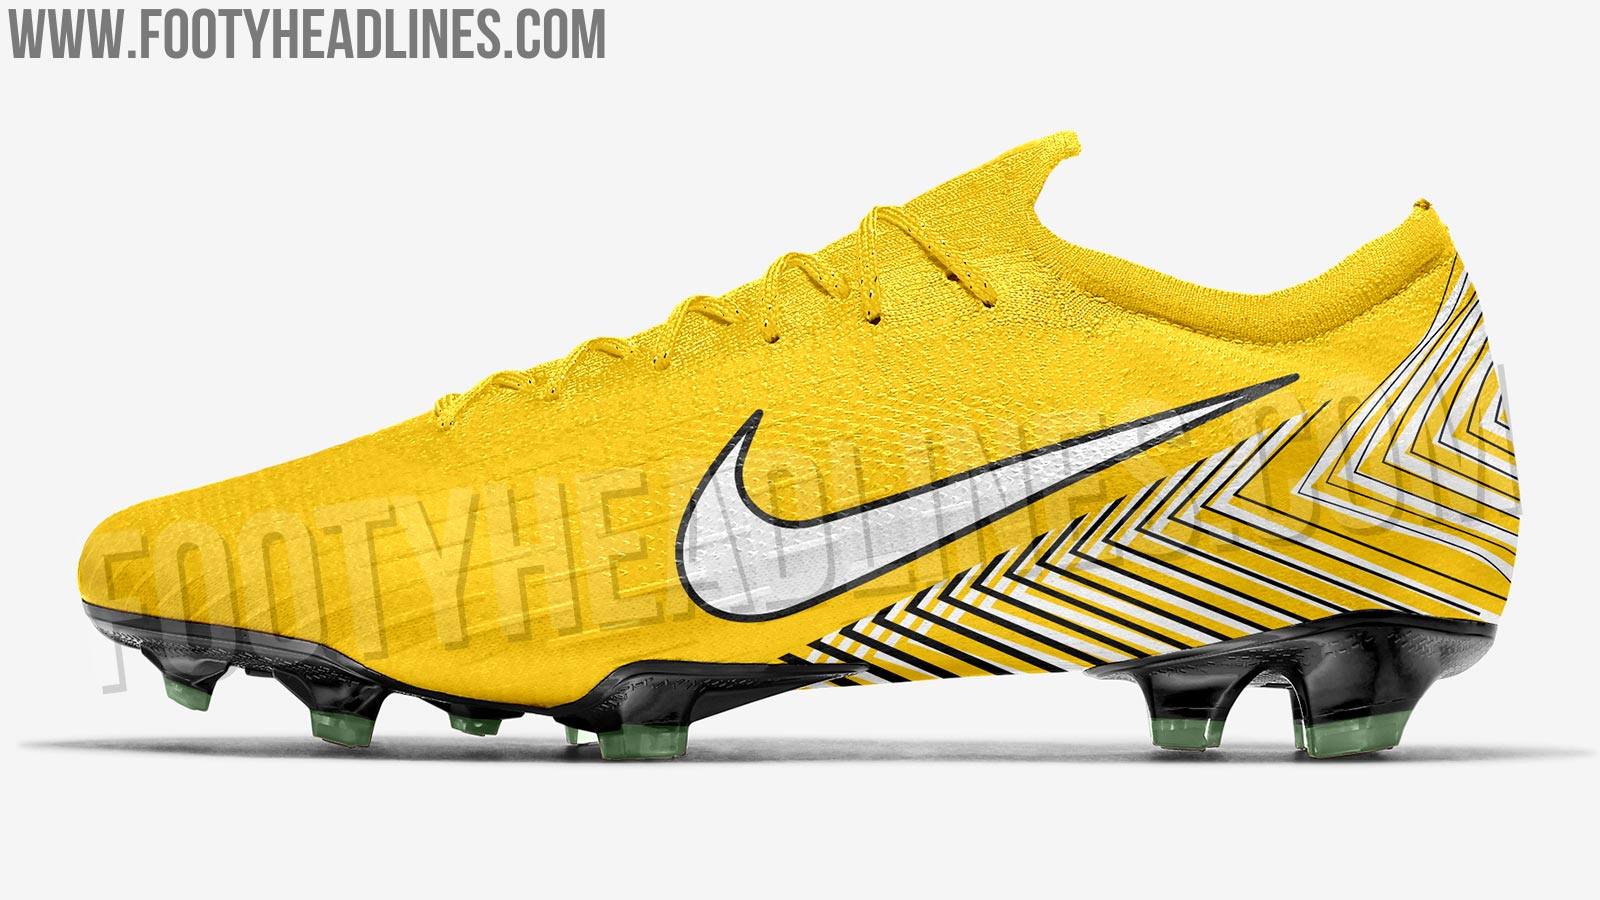 This image shows the Nike Mercurial Vapor 12 Elite Neymar signature boots.